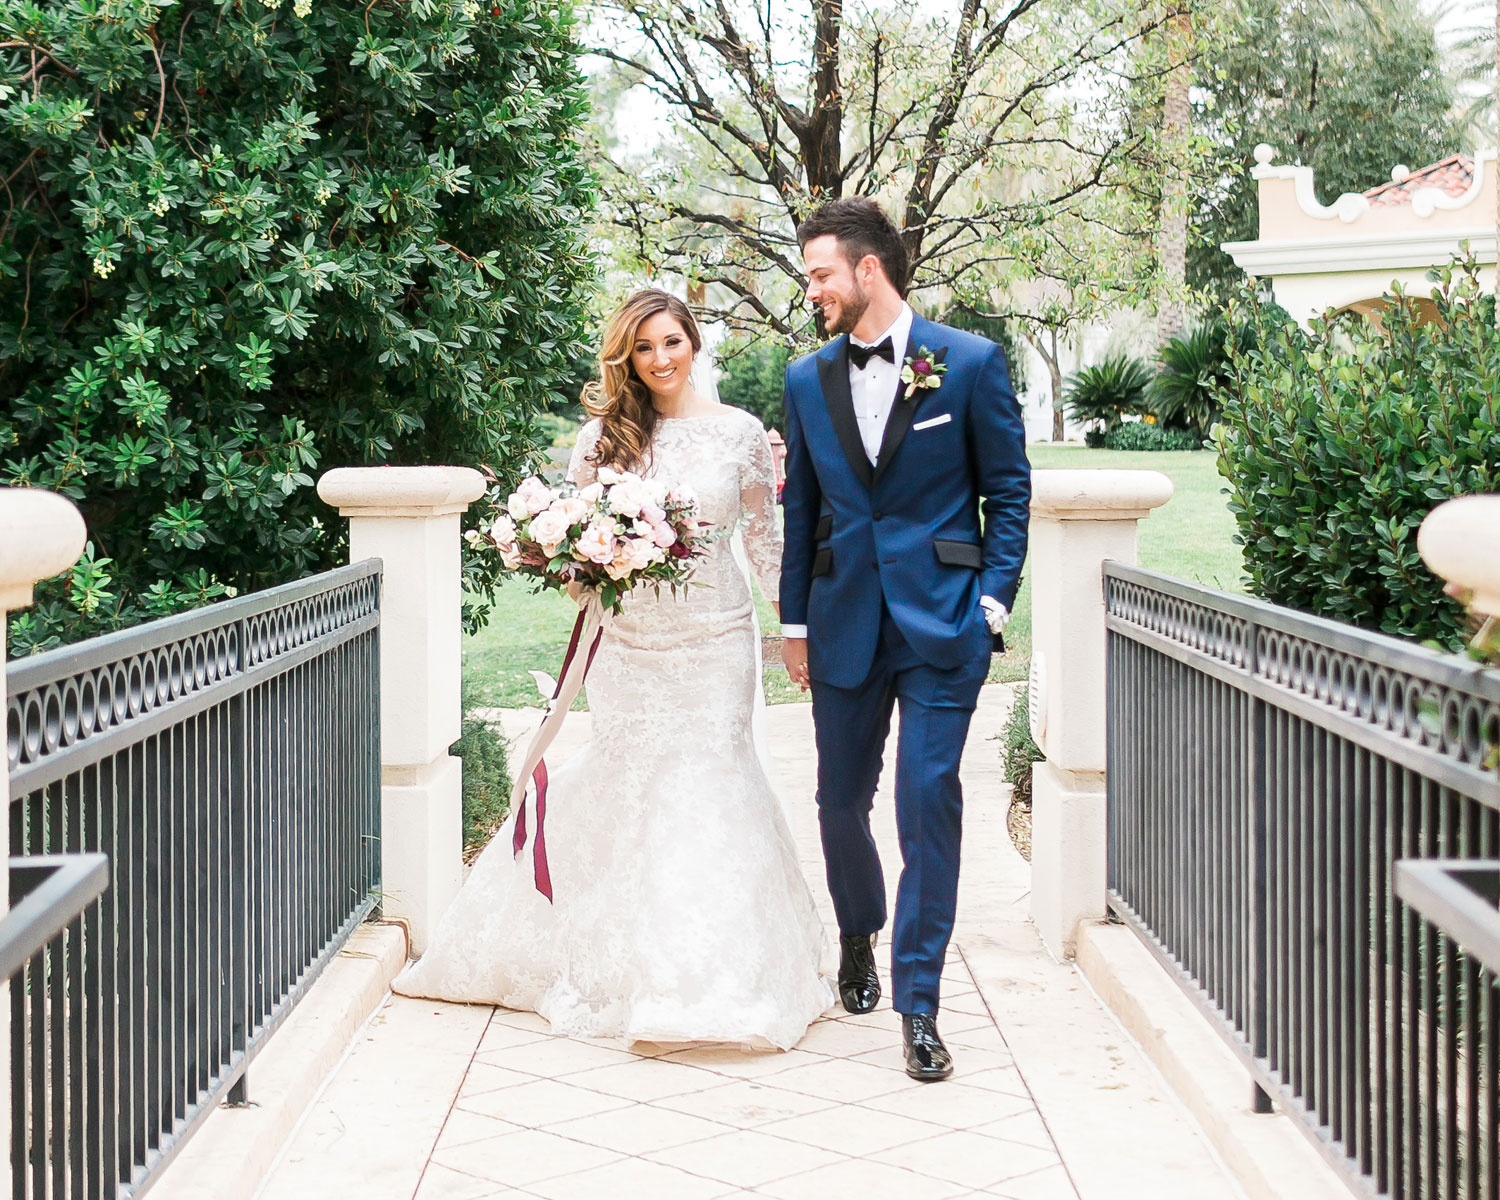 Kris Bryant and Jessica Delp wedding, January 2017 in  Las Vegas. (Credit: Jodi Anne / J. Anne Photography)